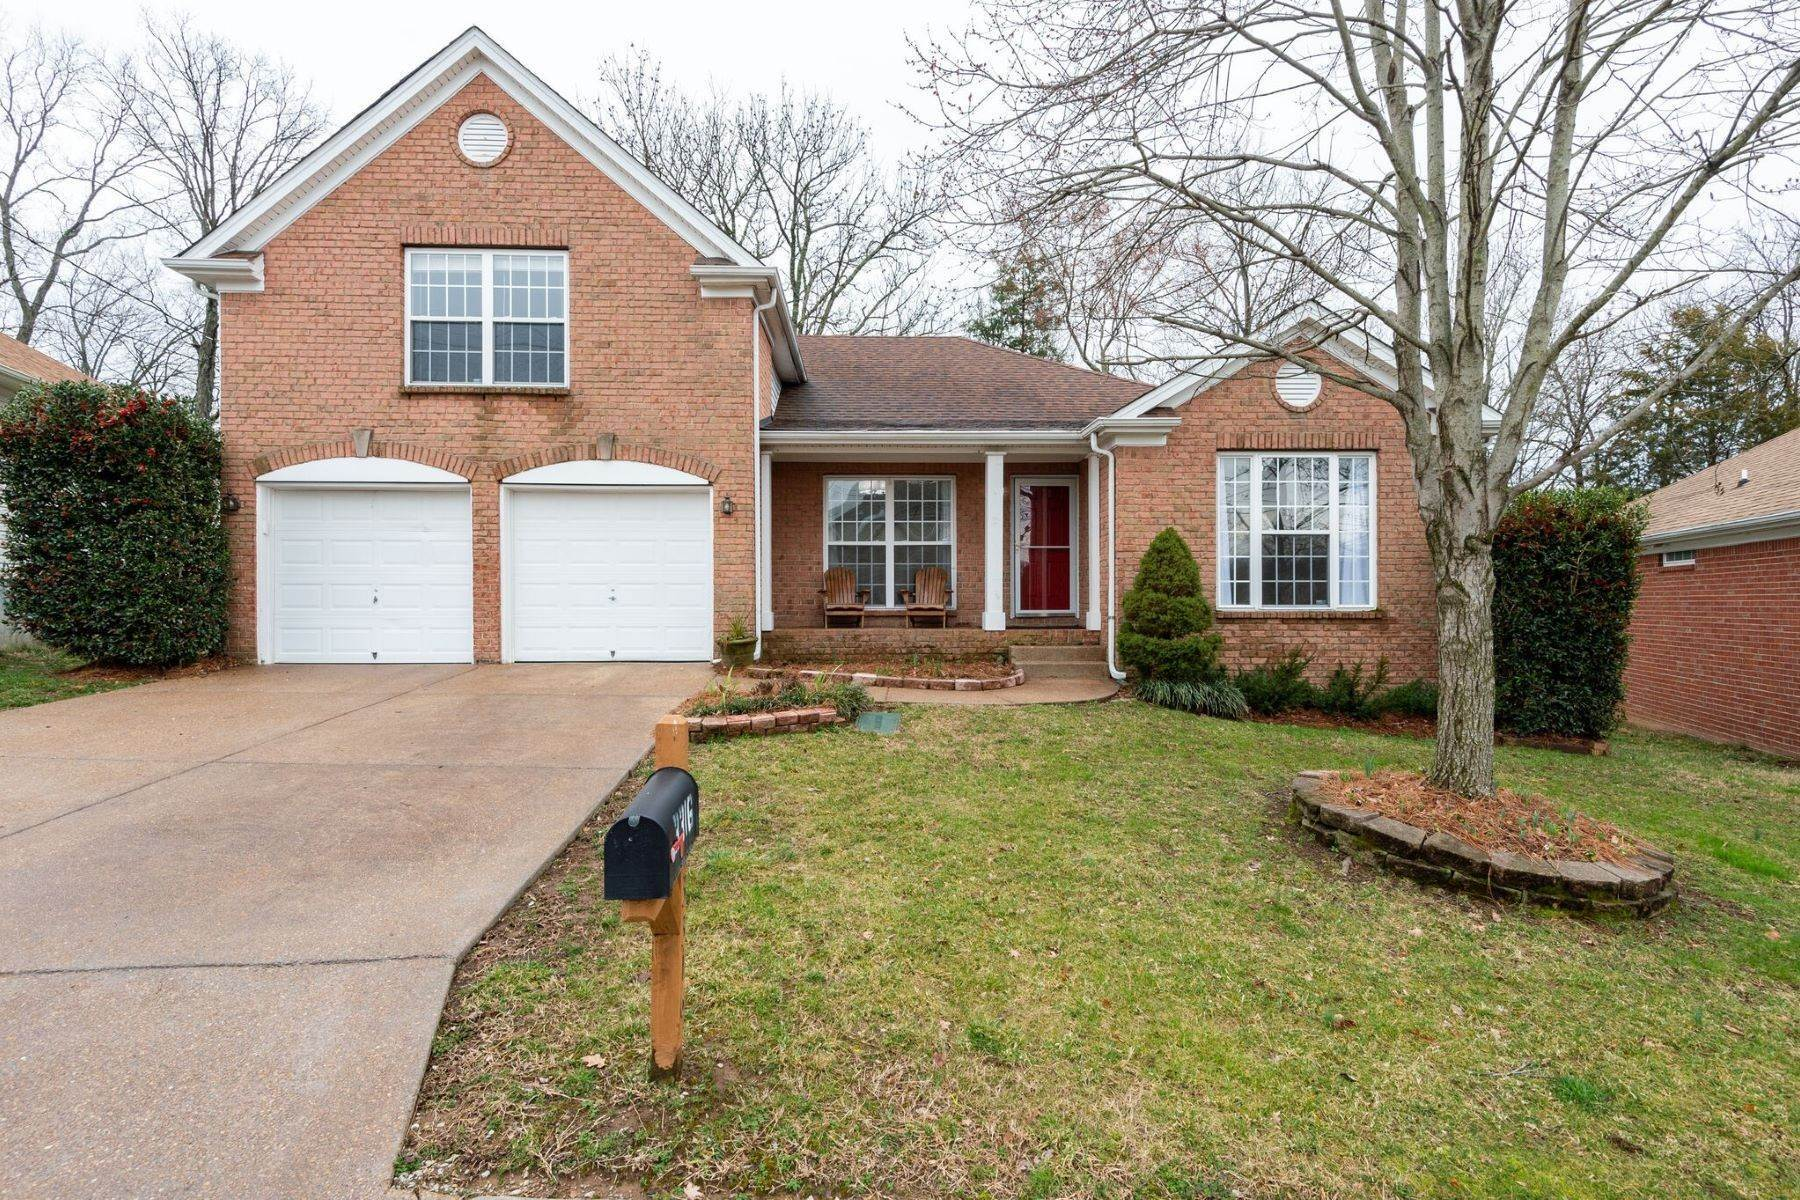 Single Family Homes for Sale at 3316 Tinney Place, Nashville, TN 37217 3316 Tinney Place Nashville, Tennessee 37217 United States